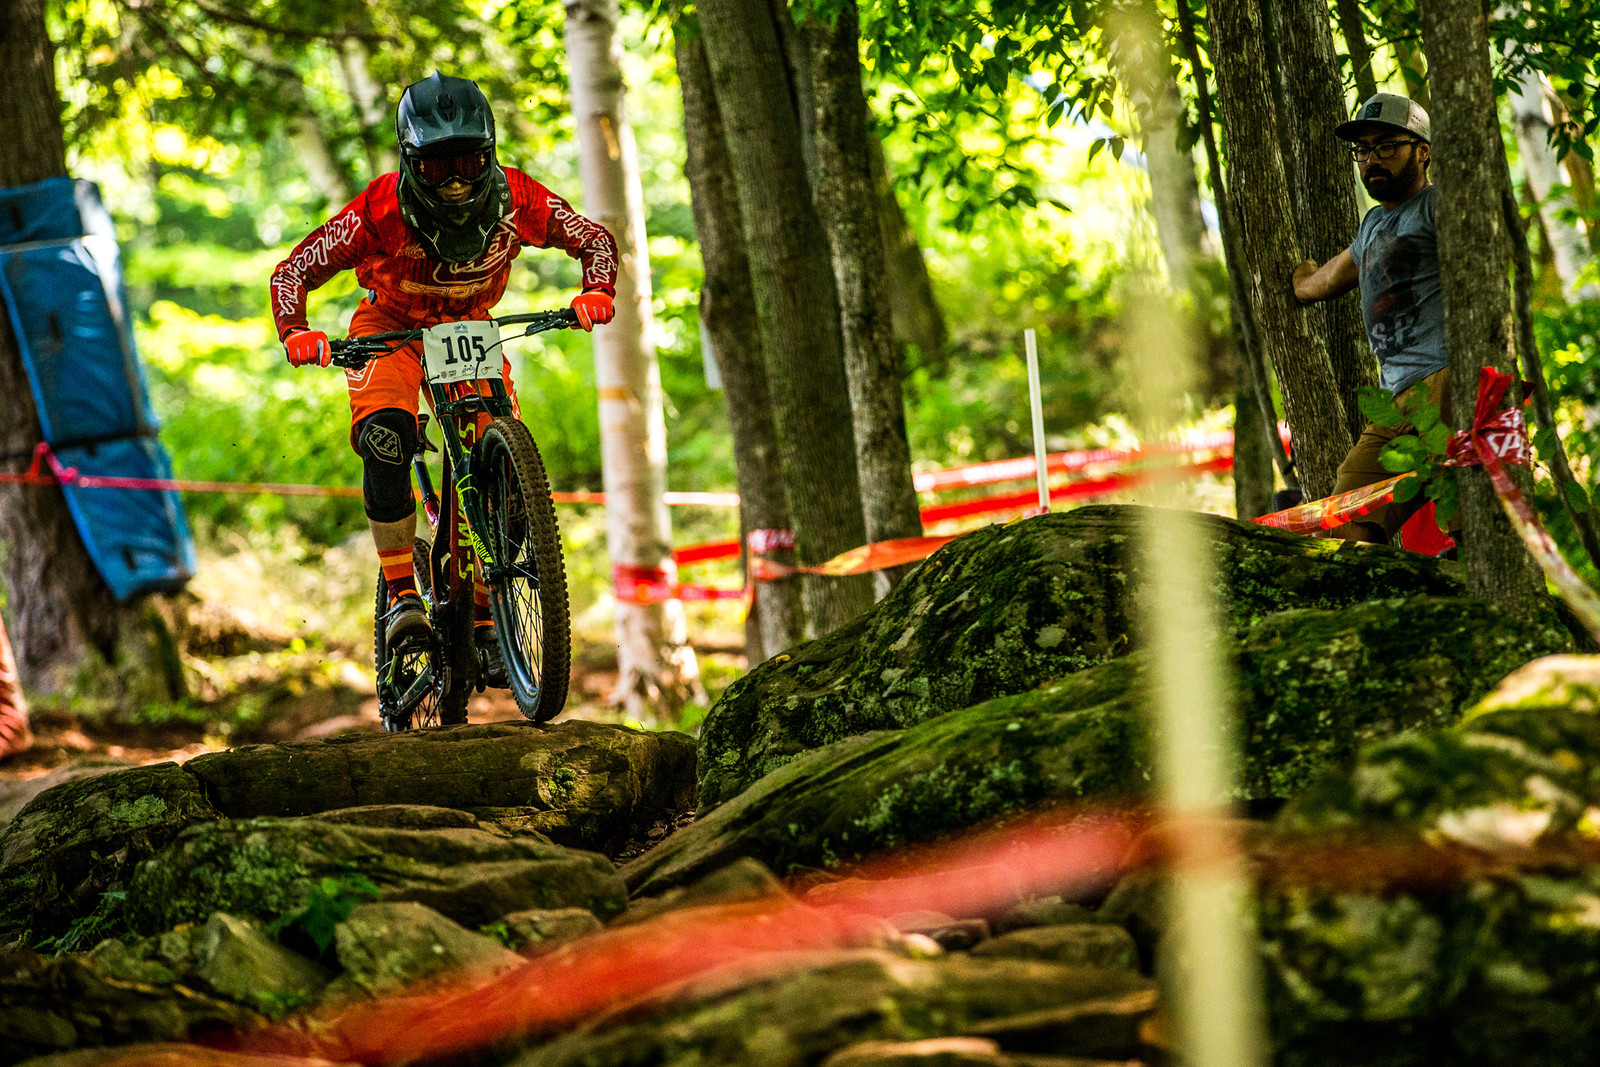 Phil Steele - RACE DAY GALLERY - 2017 Pro GRT, Windham, NY - Mountain Biking Pictures - Vital MTB